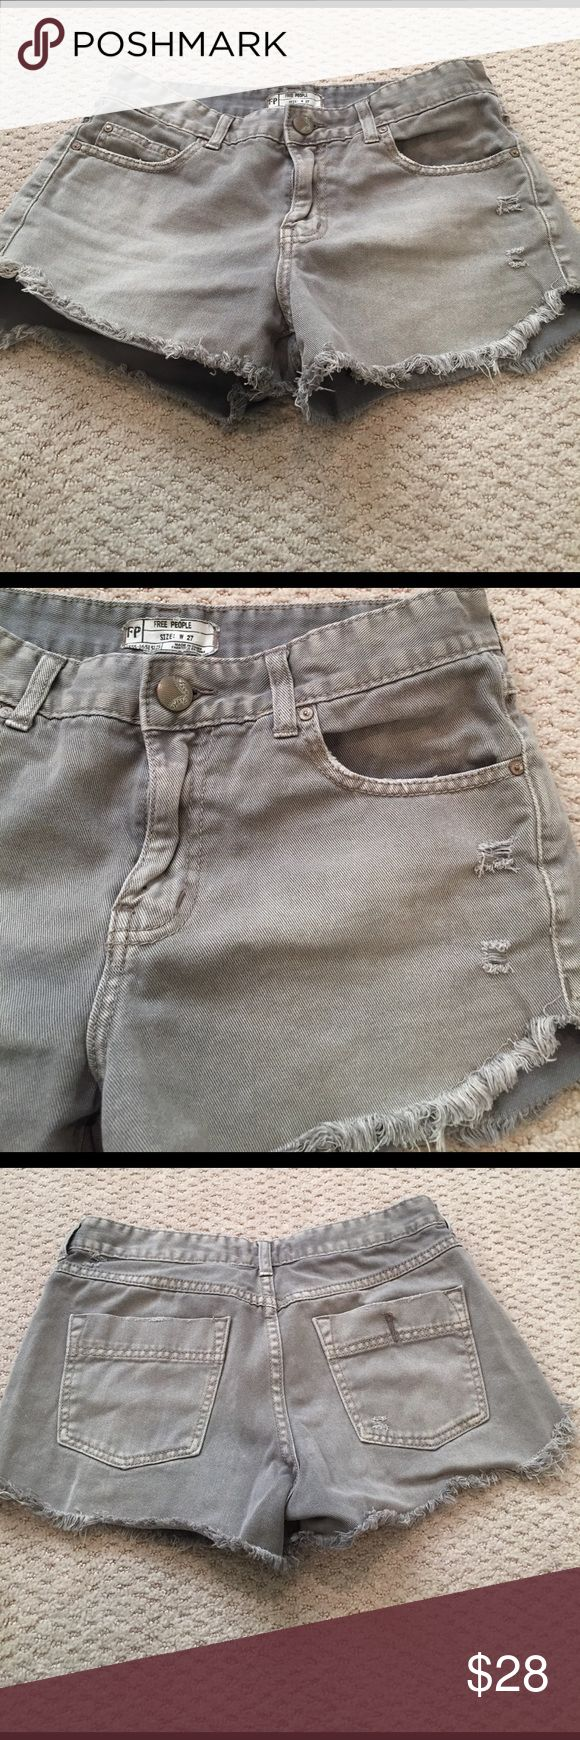 Free People Shorts Free People grey denim cutoff shorts with a dolphin cut on the sides. Great condition and great summer shorts Free People Shorts Jean Shorts